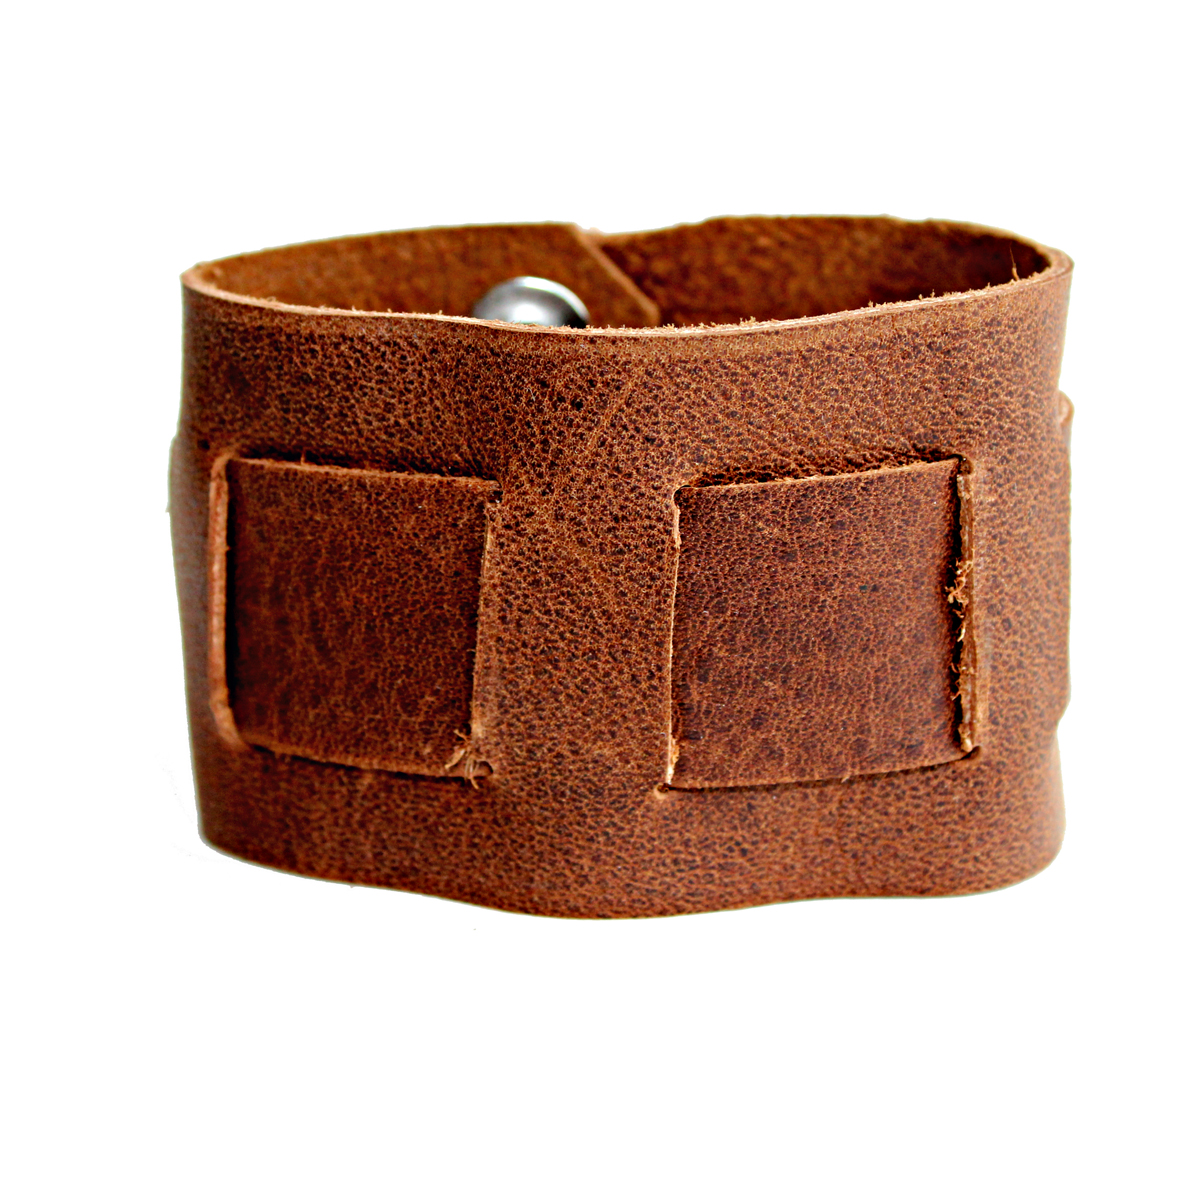 rustic-interwoven-mens-womens-brown-leather-cuff-the-leather-smithy_1